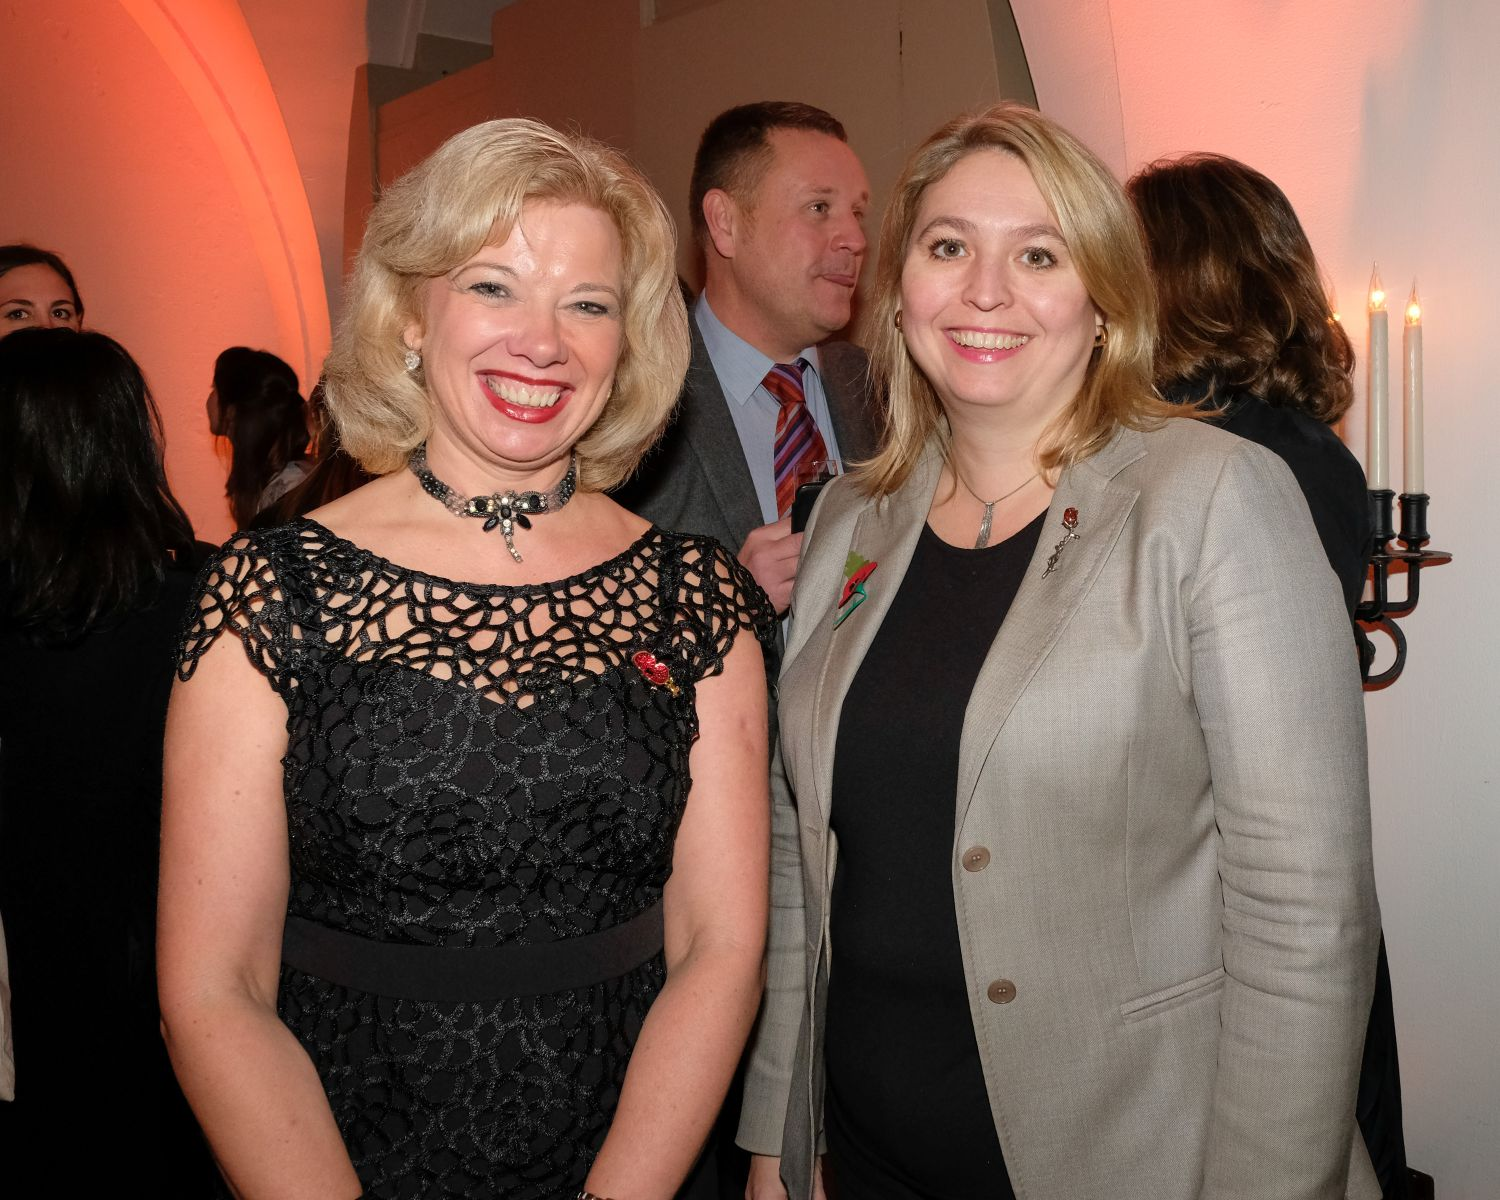 Secretary of State addresses UKinbound's World Travel Market